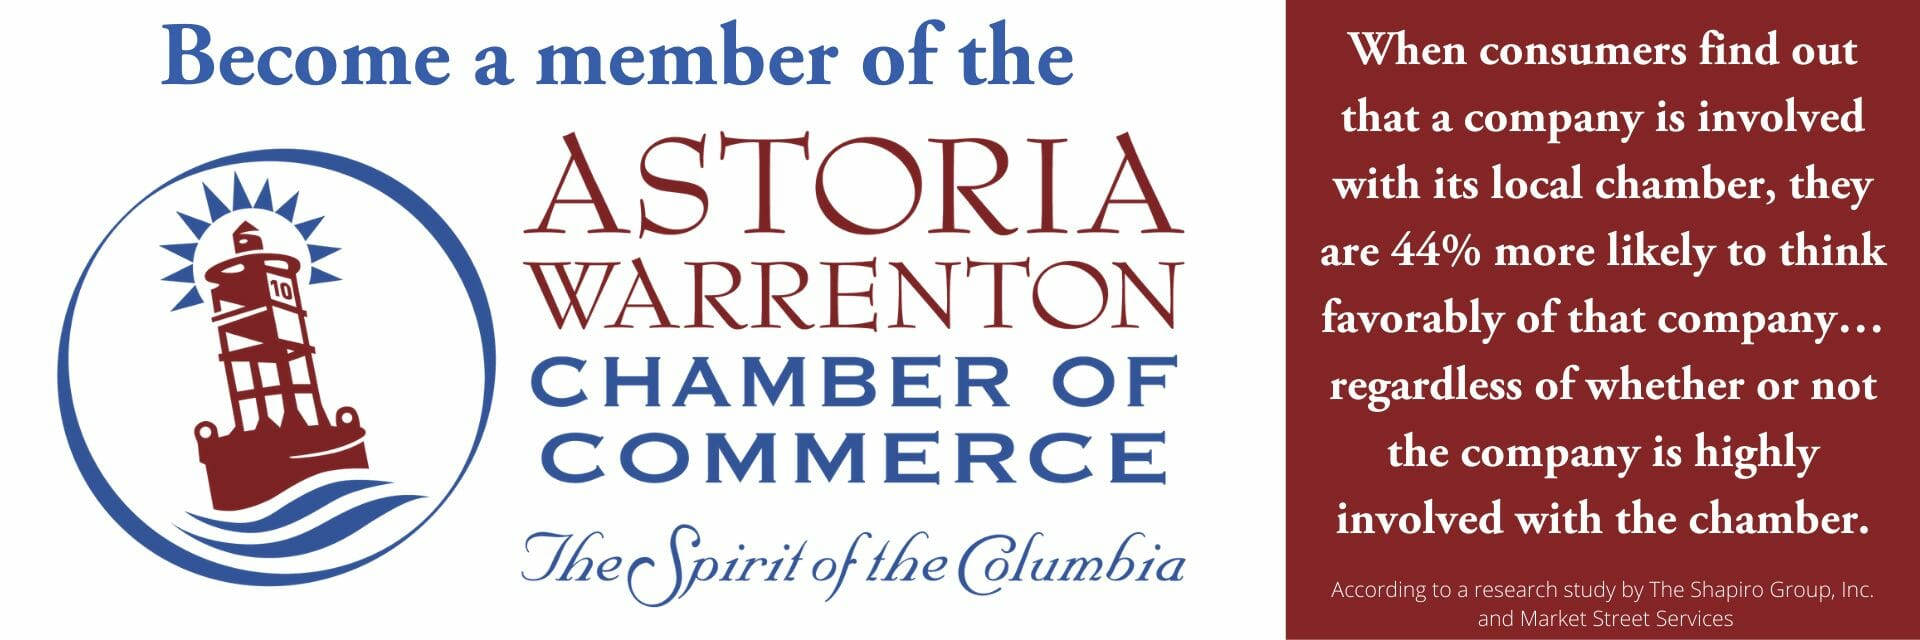 Research study statistic about consumer confidence being higher when they know a business is a chamber member.